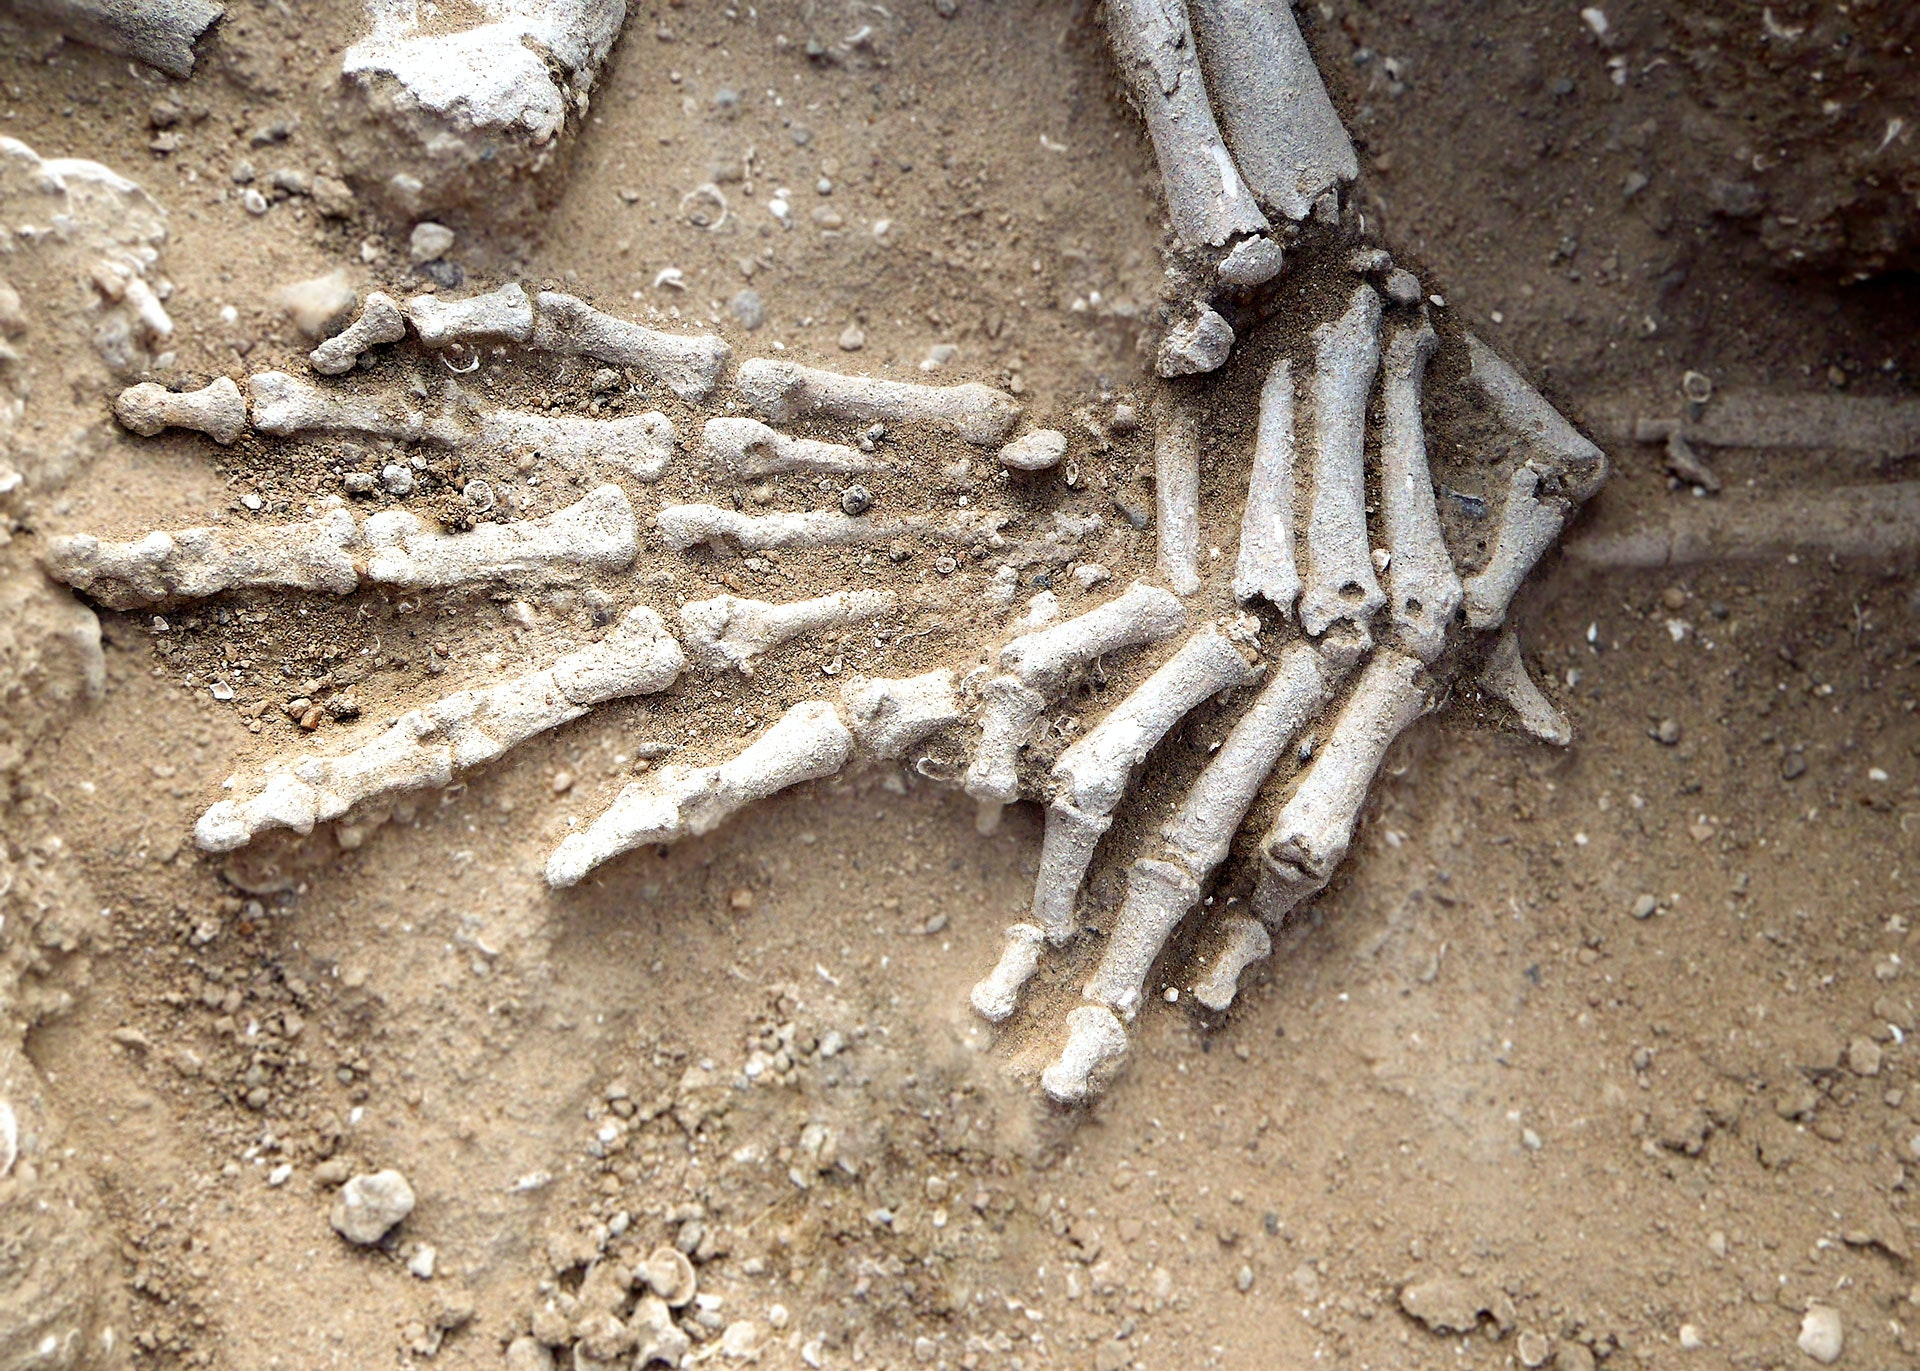 Detail of hands of in situ skeleton. Position suggests they had been bound